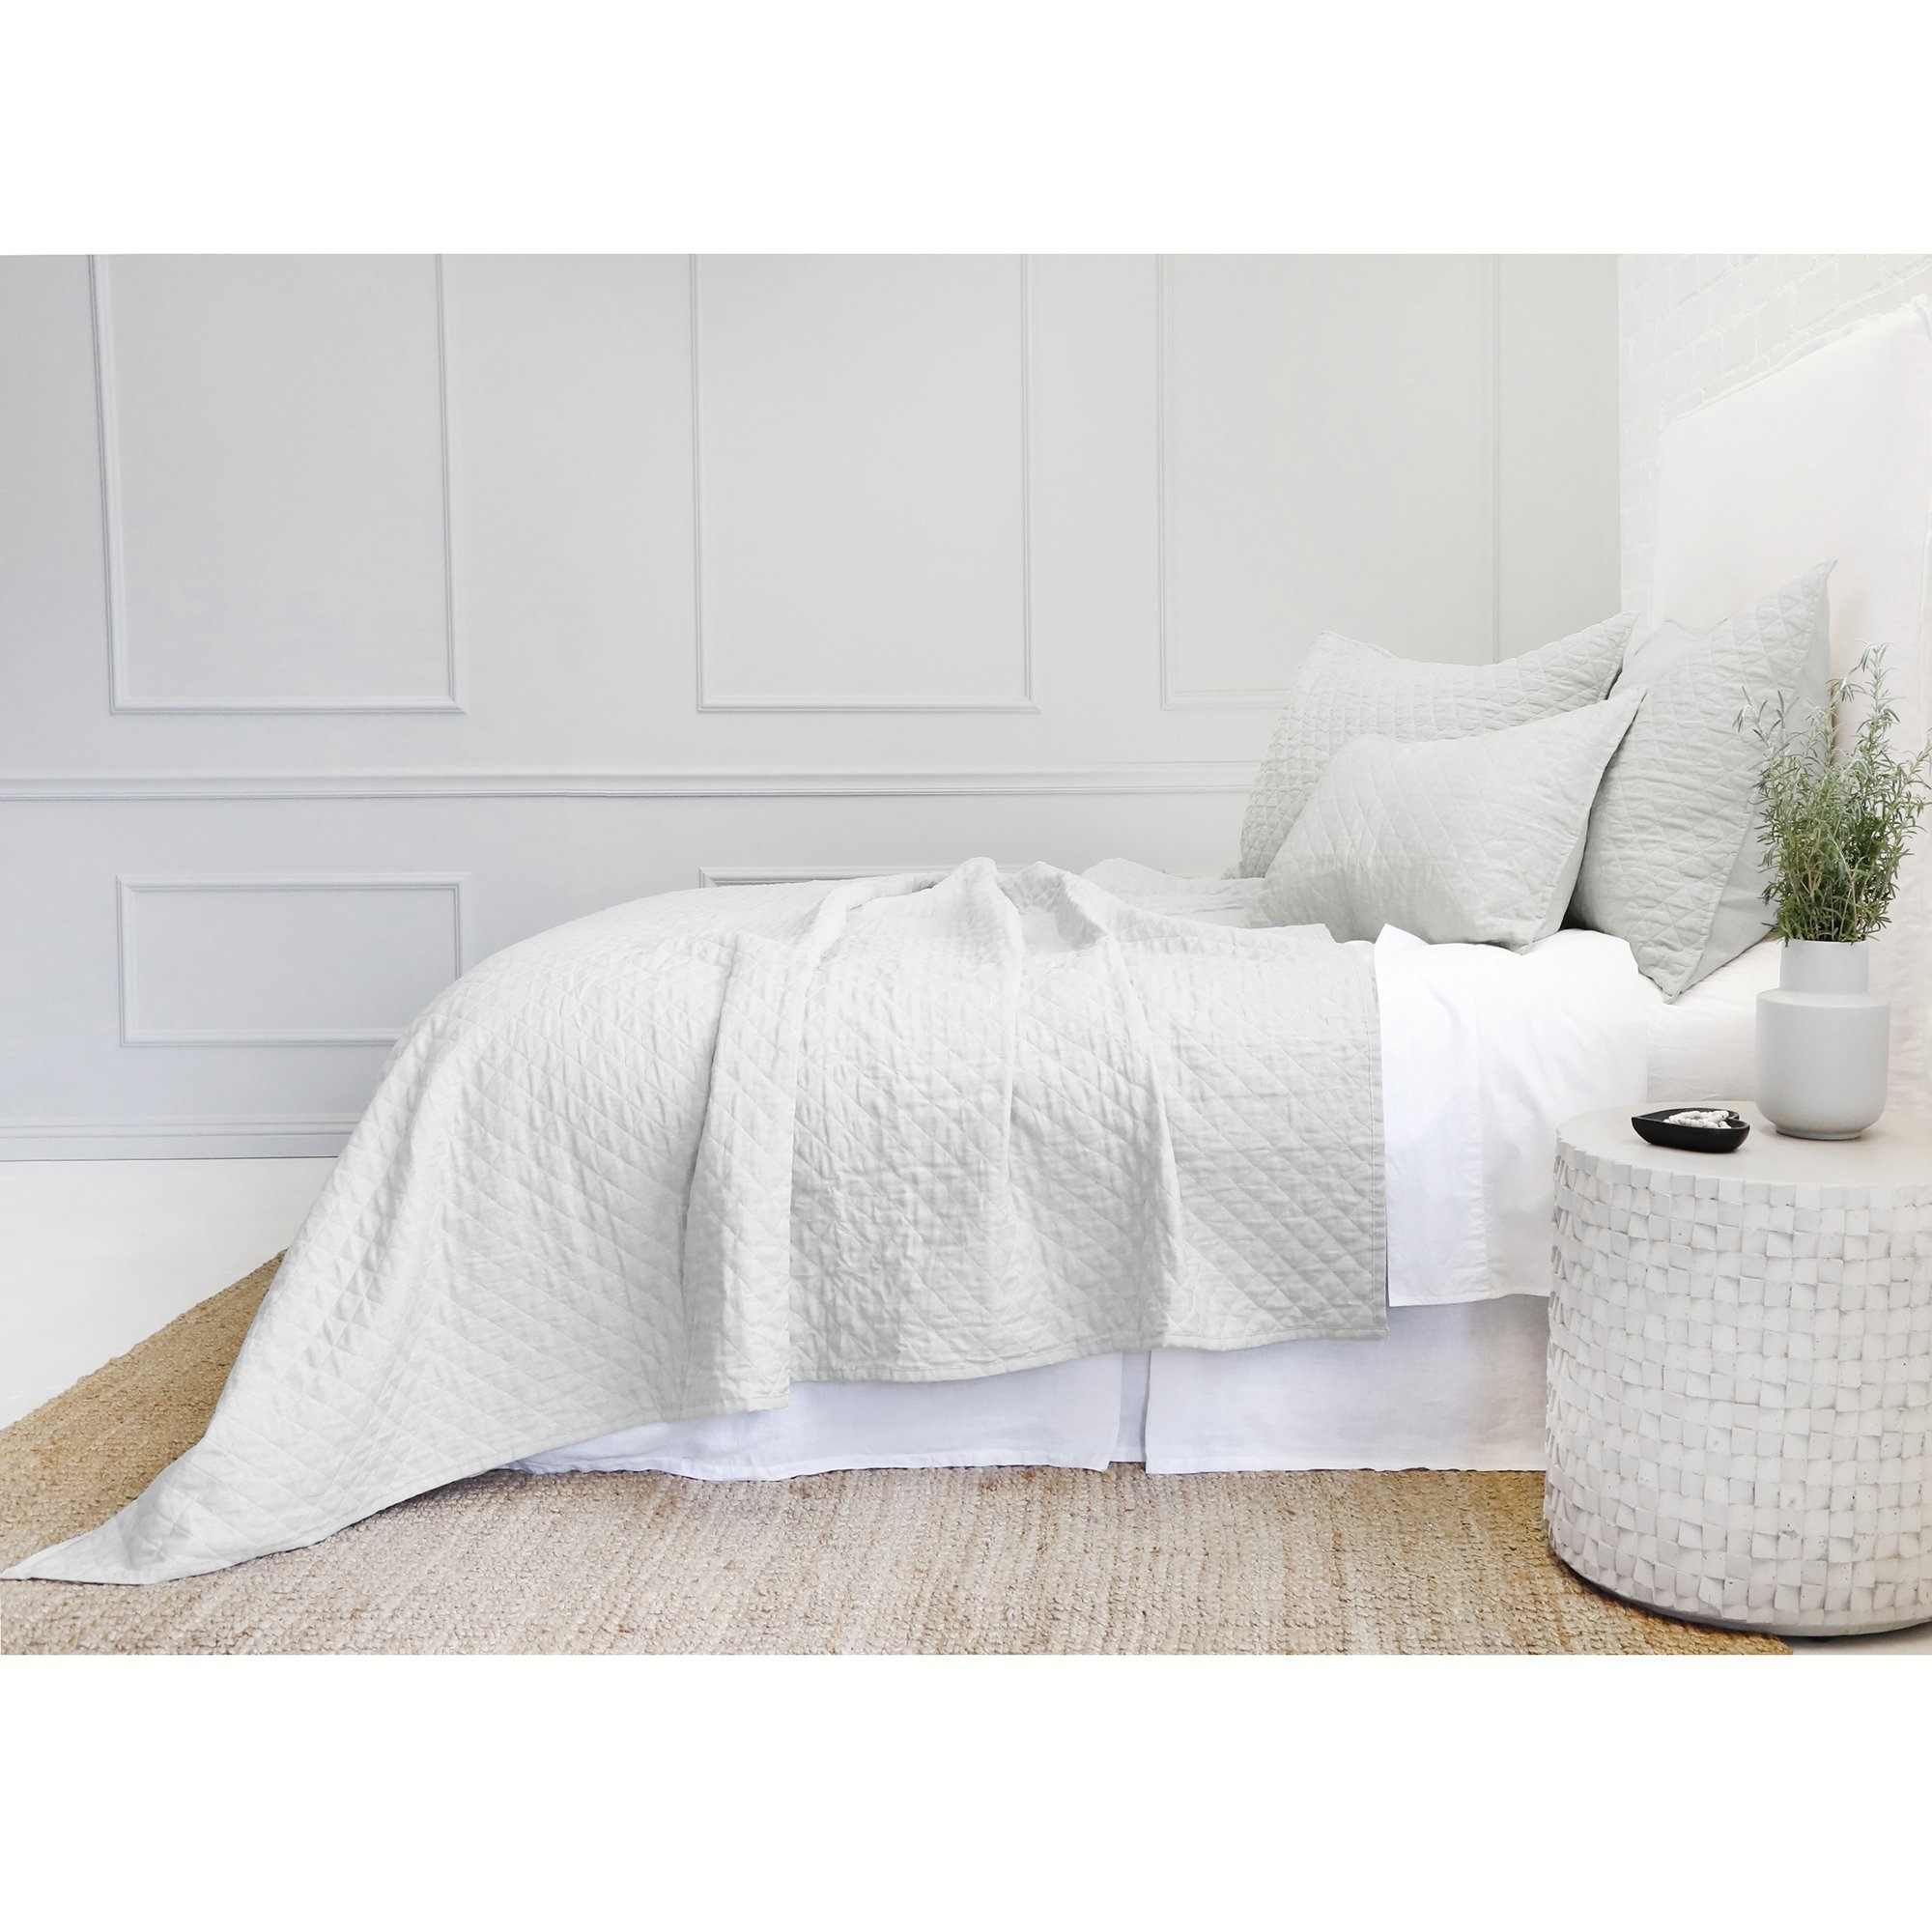 Fig Linens - Pom Pom at Home Bedding - Hampton Silver quilted coverlet and shams